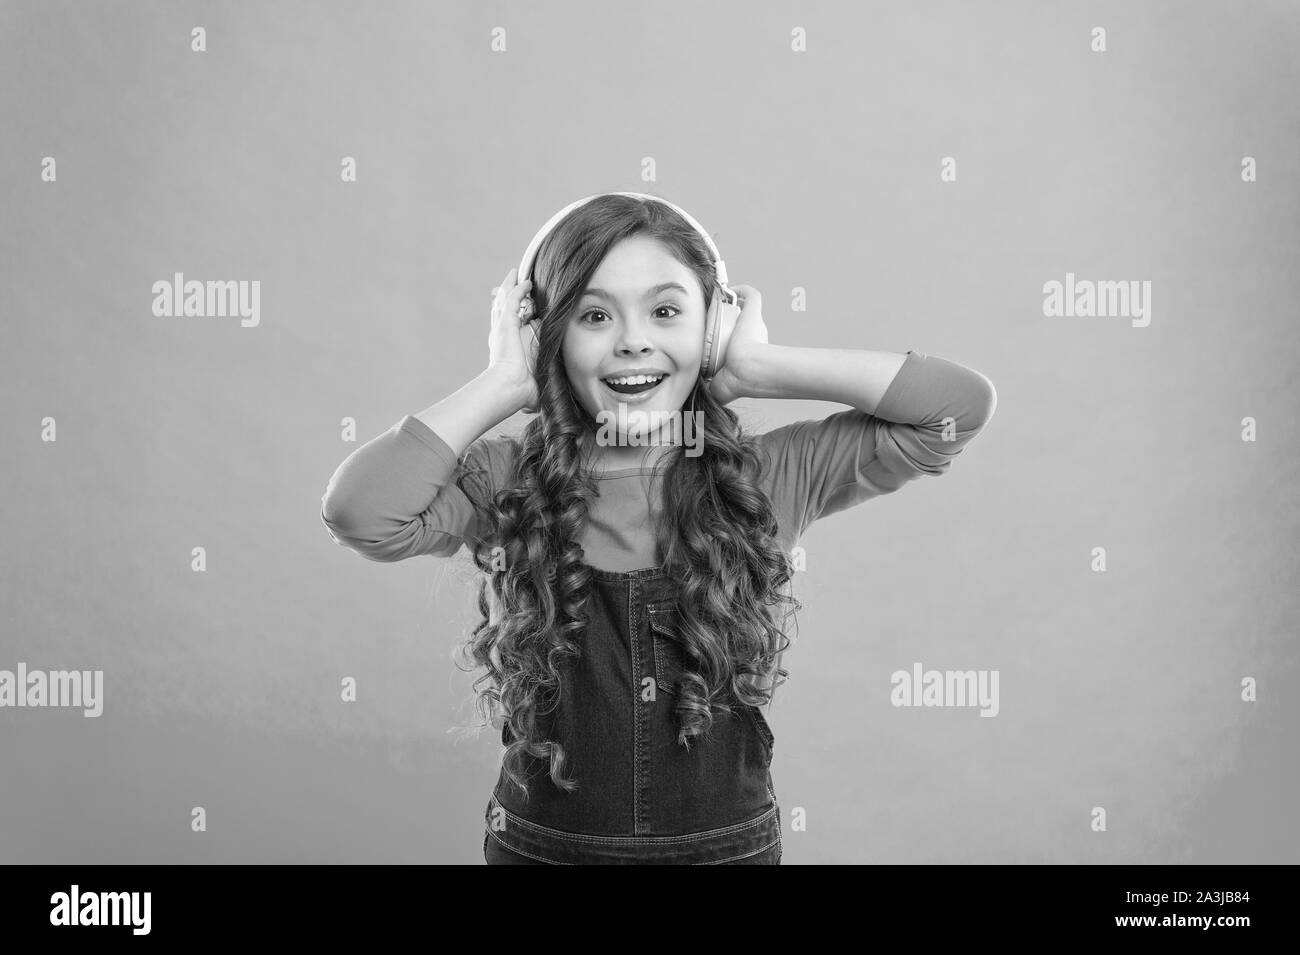 Feeling the beauty of the song. Cute small child listening to song on blue background. Adorable little girl enjoying song playing in headphones. Composing a song. Stock Photo